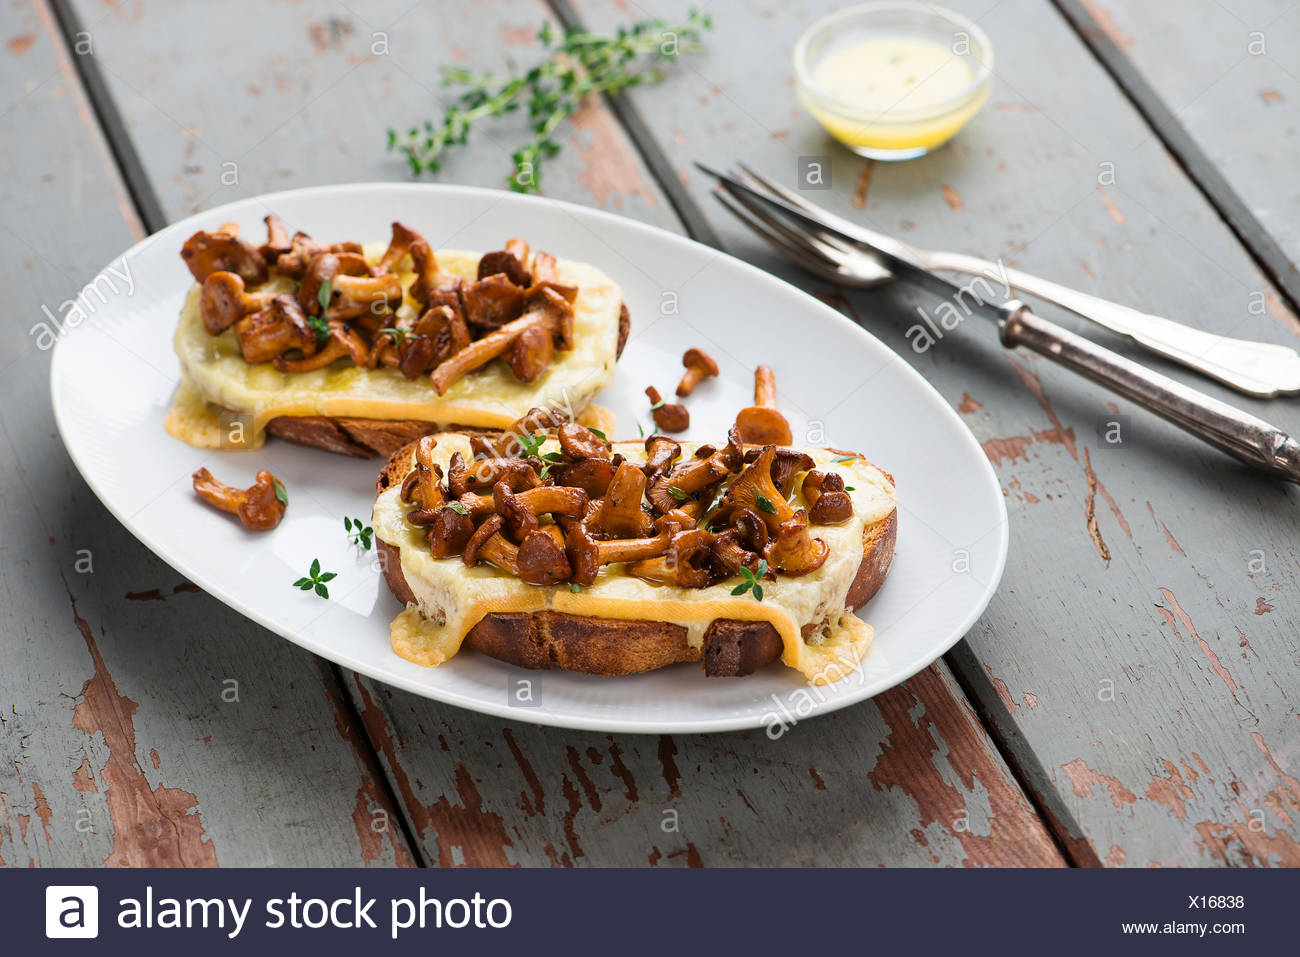 Chanterelle sandwiches with cheese - Stock Image